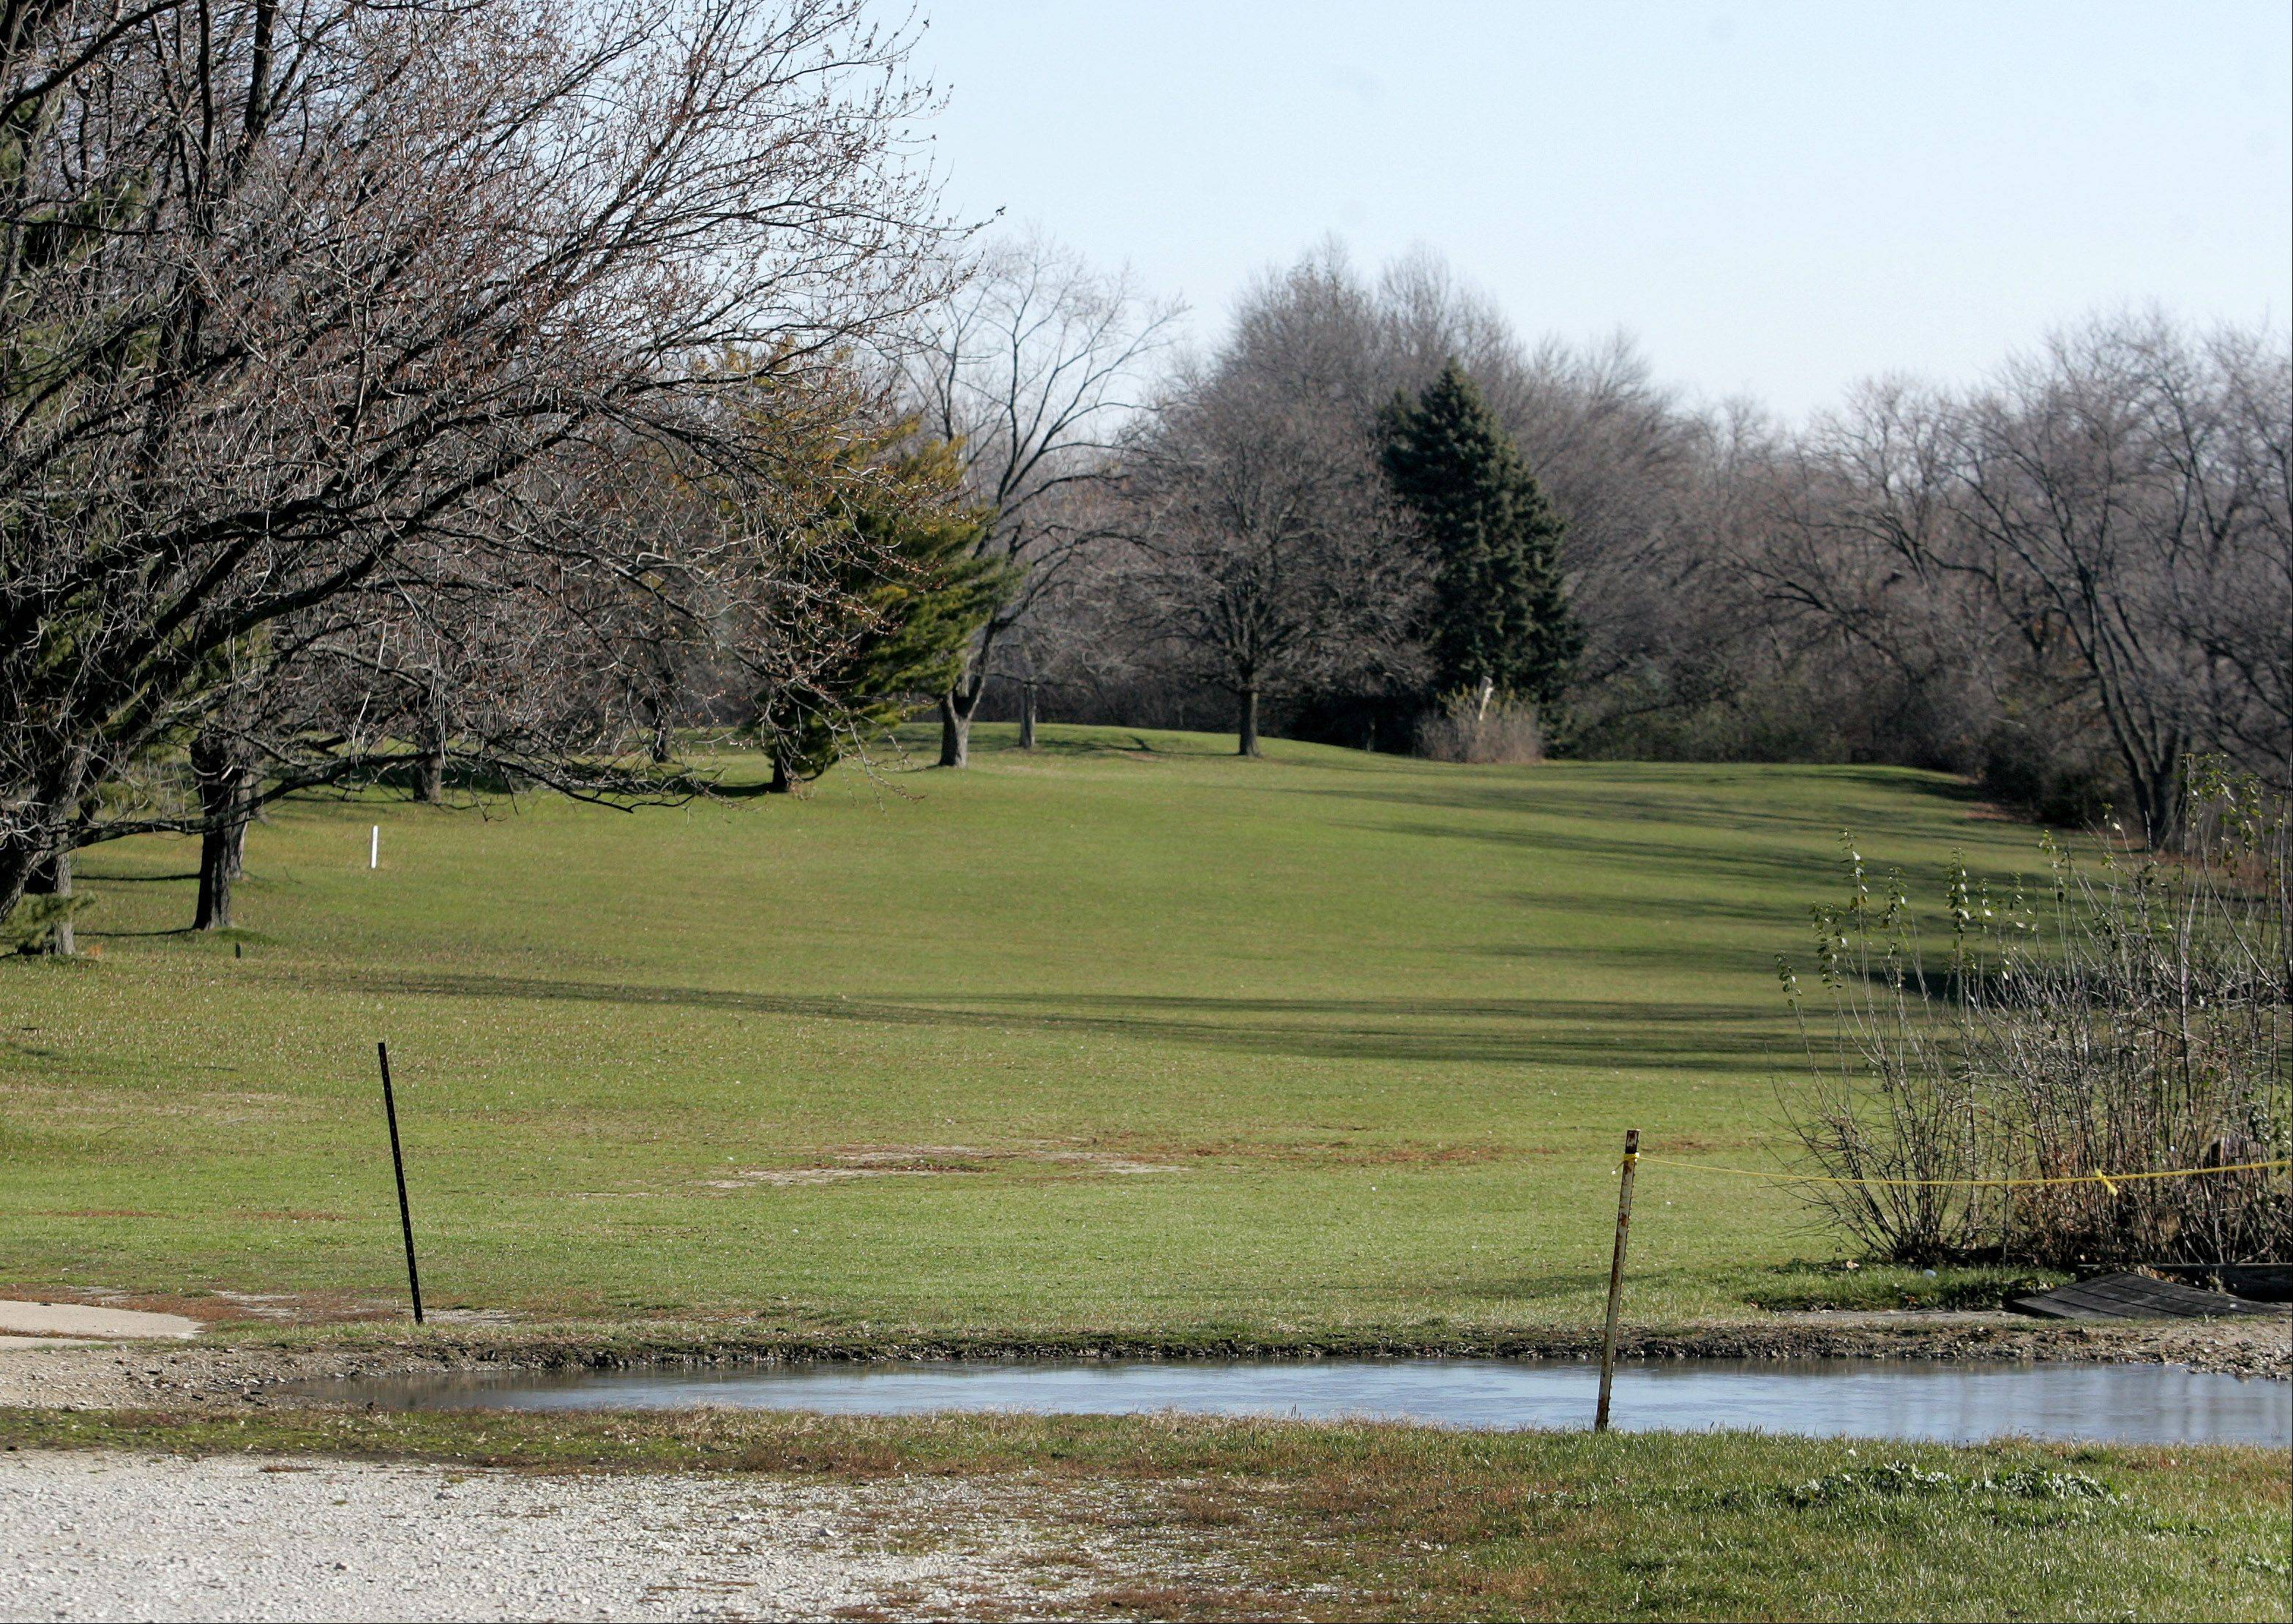 A developer who wants to build apartments and townhouses on what's currently the Ken-Loch Golf Links near Lombard is hoping DuPage County grants a rezoning request from the property's owners.